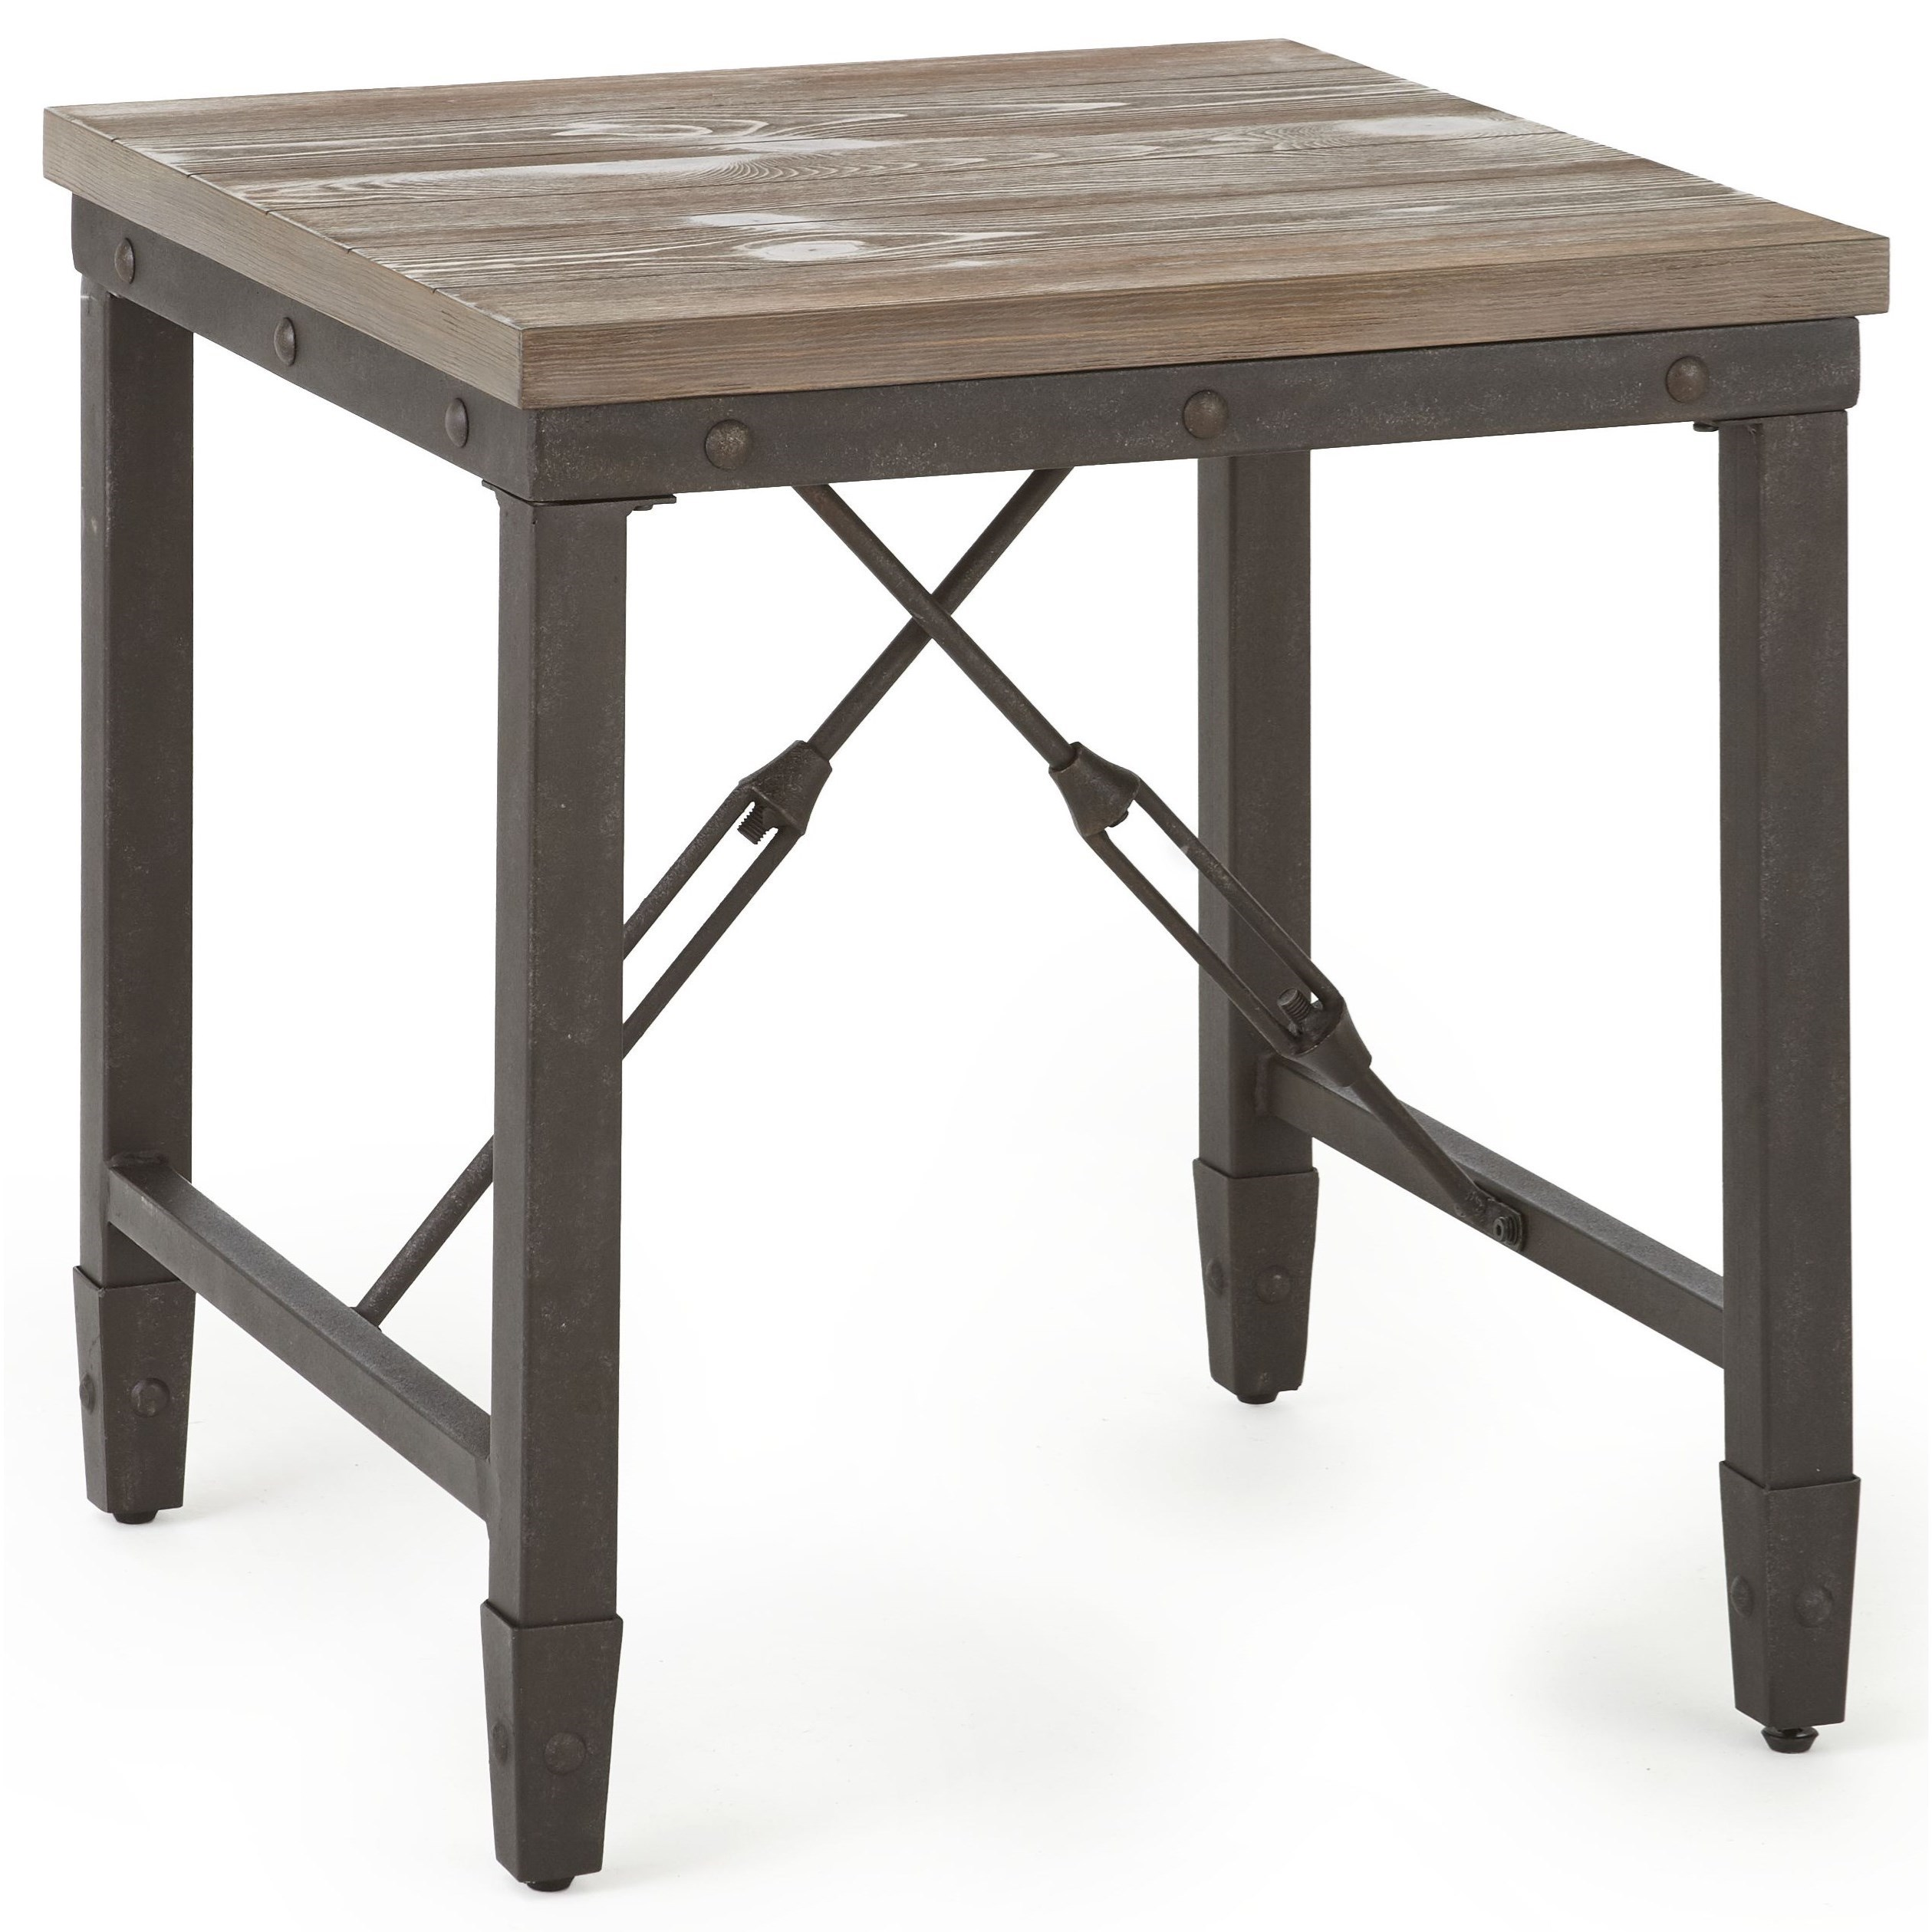 Jersey End Table by Steve Silver at Walker's Furniture